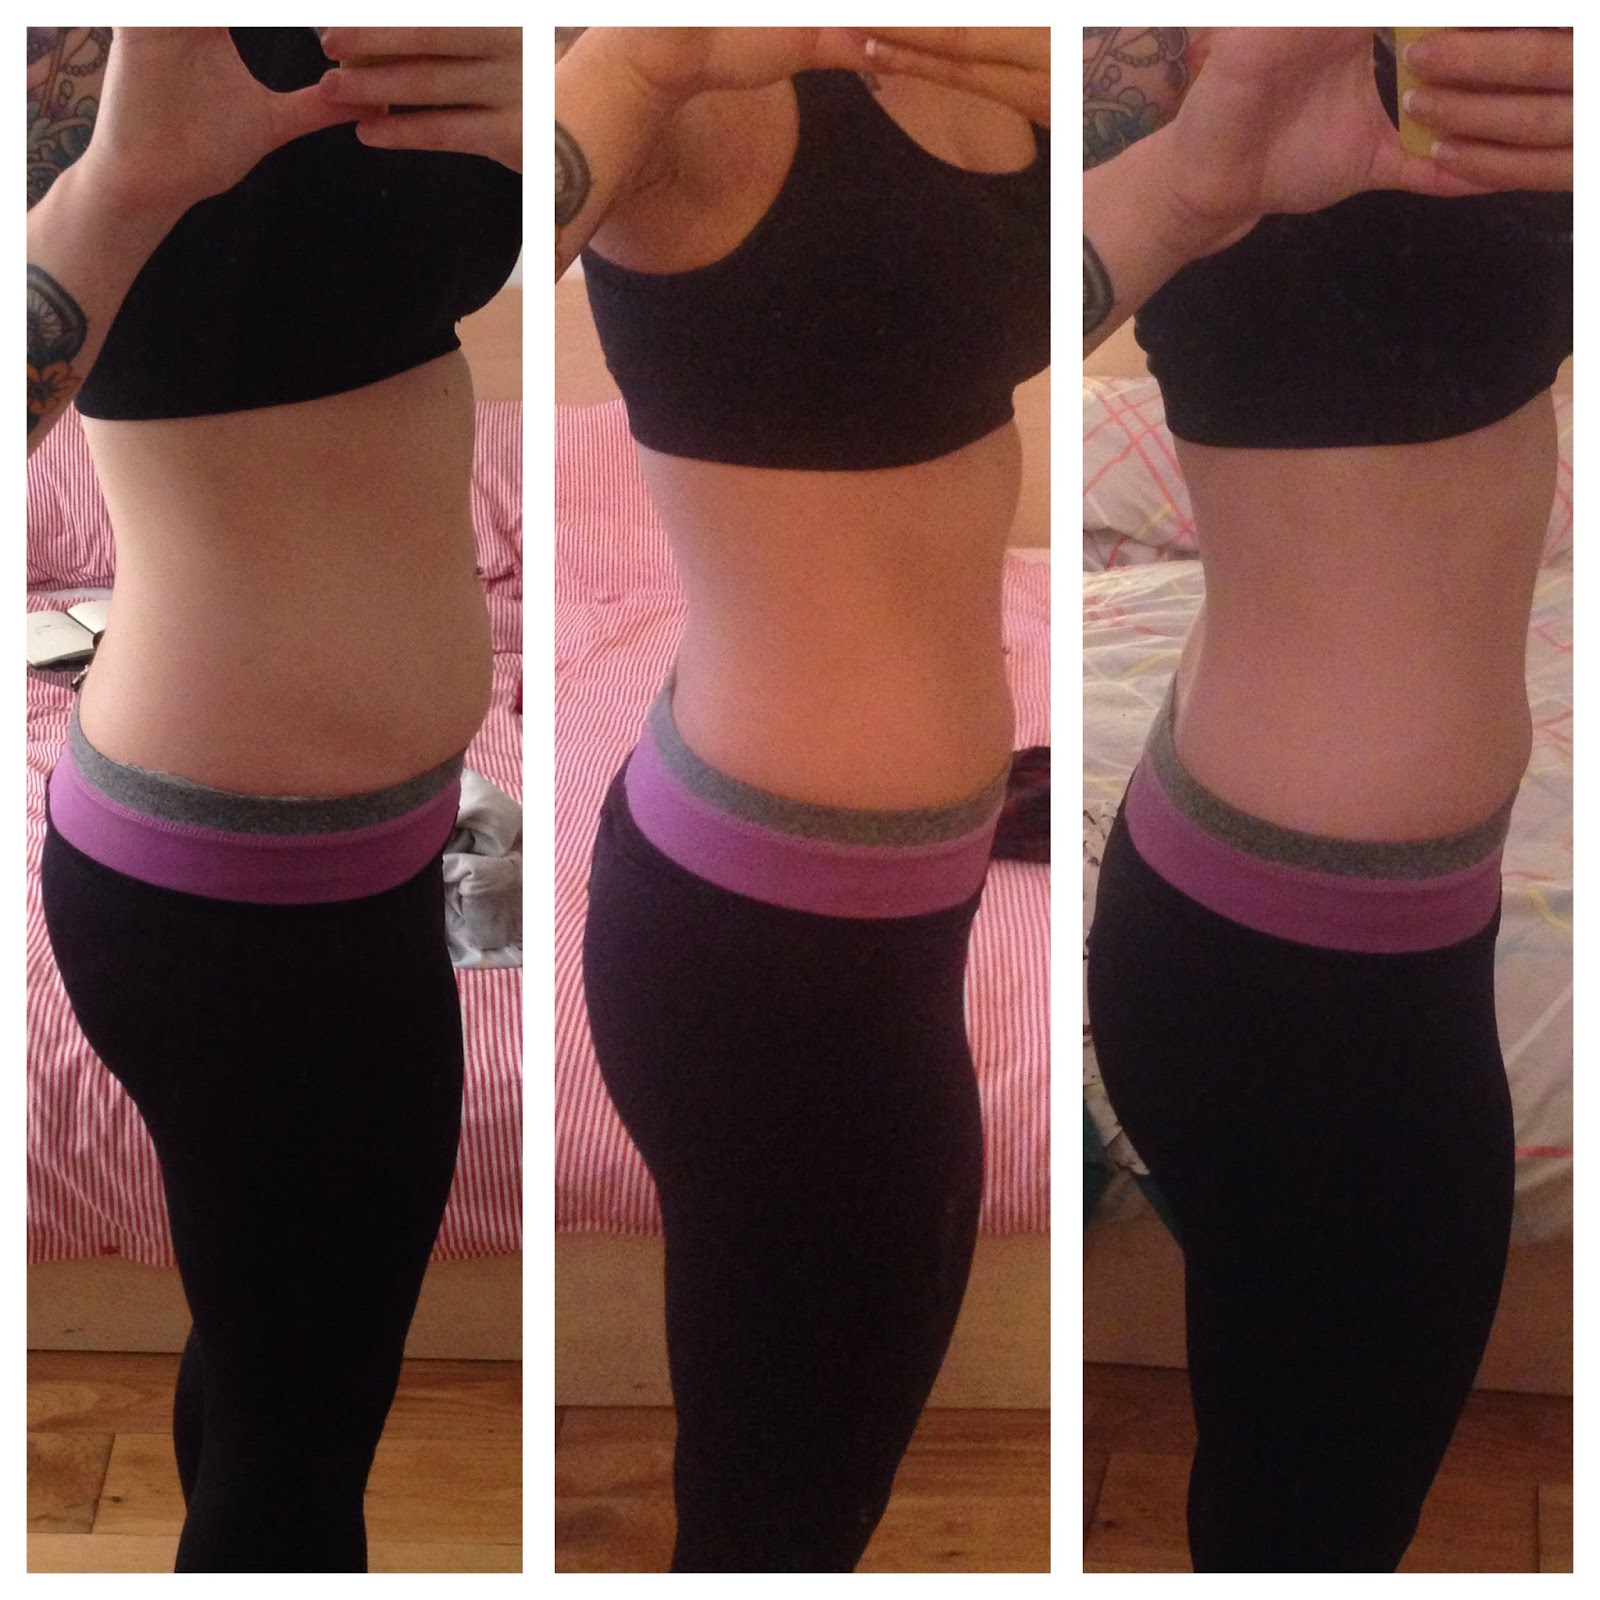 I Finished Up On The Course Today And Am Really Chuffed With Results After 6 Sessions Of Technoshape Lost 5cm From My Waist 7cm Stomach